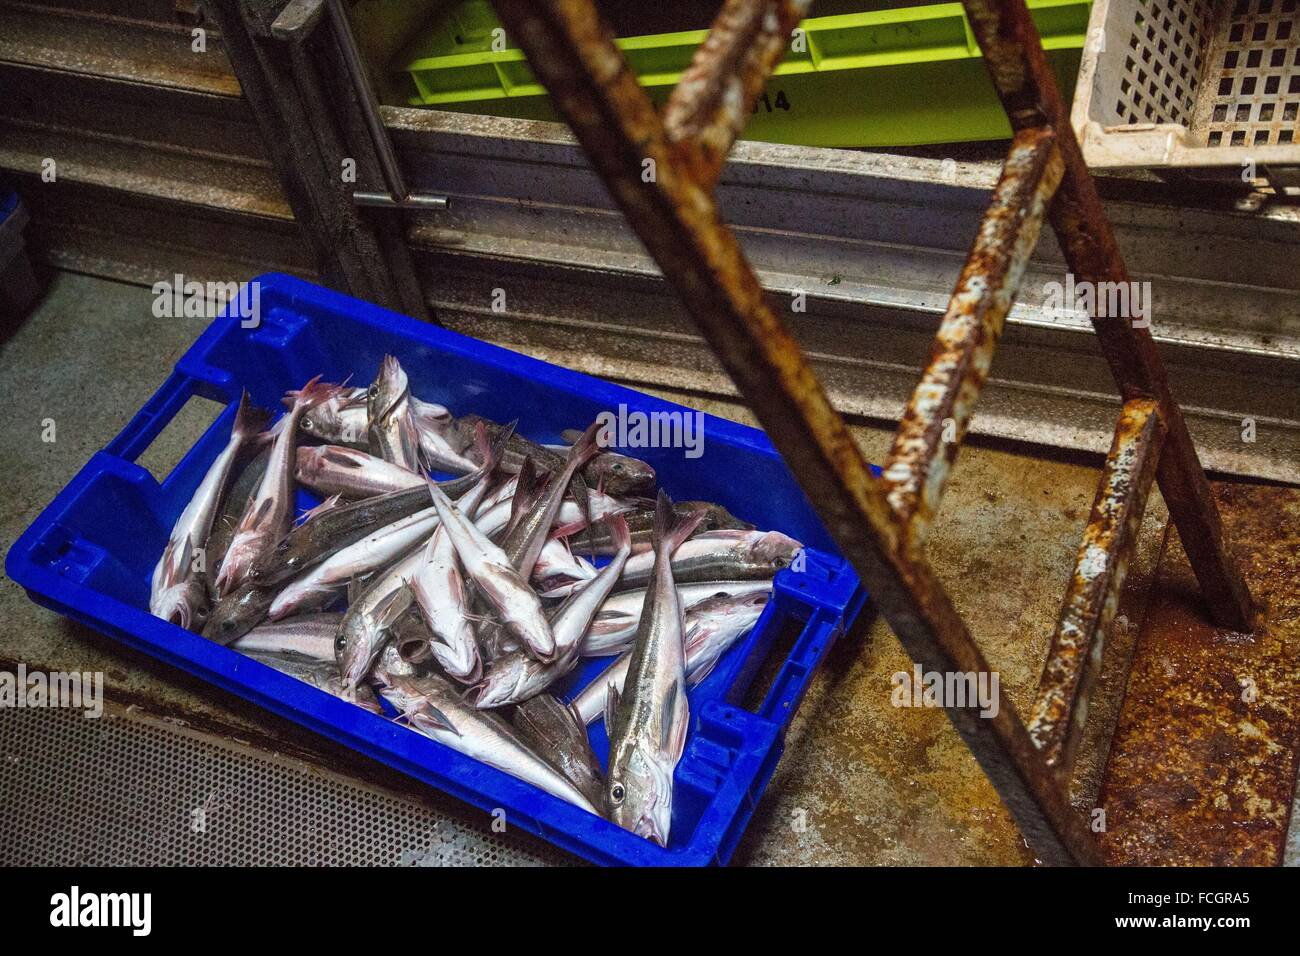 STORAGE OF THE FISH (MULLET) IN THE REFRIGERATORS, SEA FISHING ON THE SHRIMP TRAWLER 'QUENTIN-GREGOIRE' - Stock Image